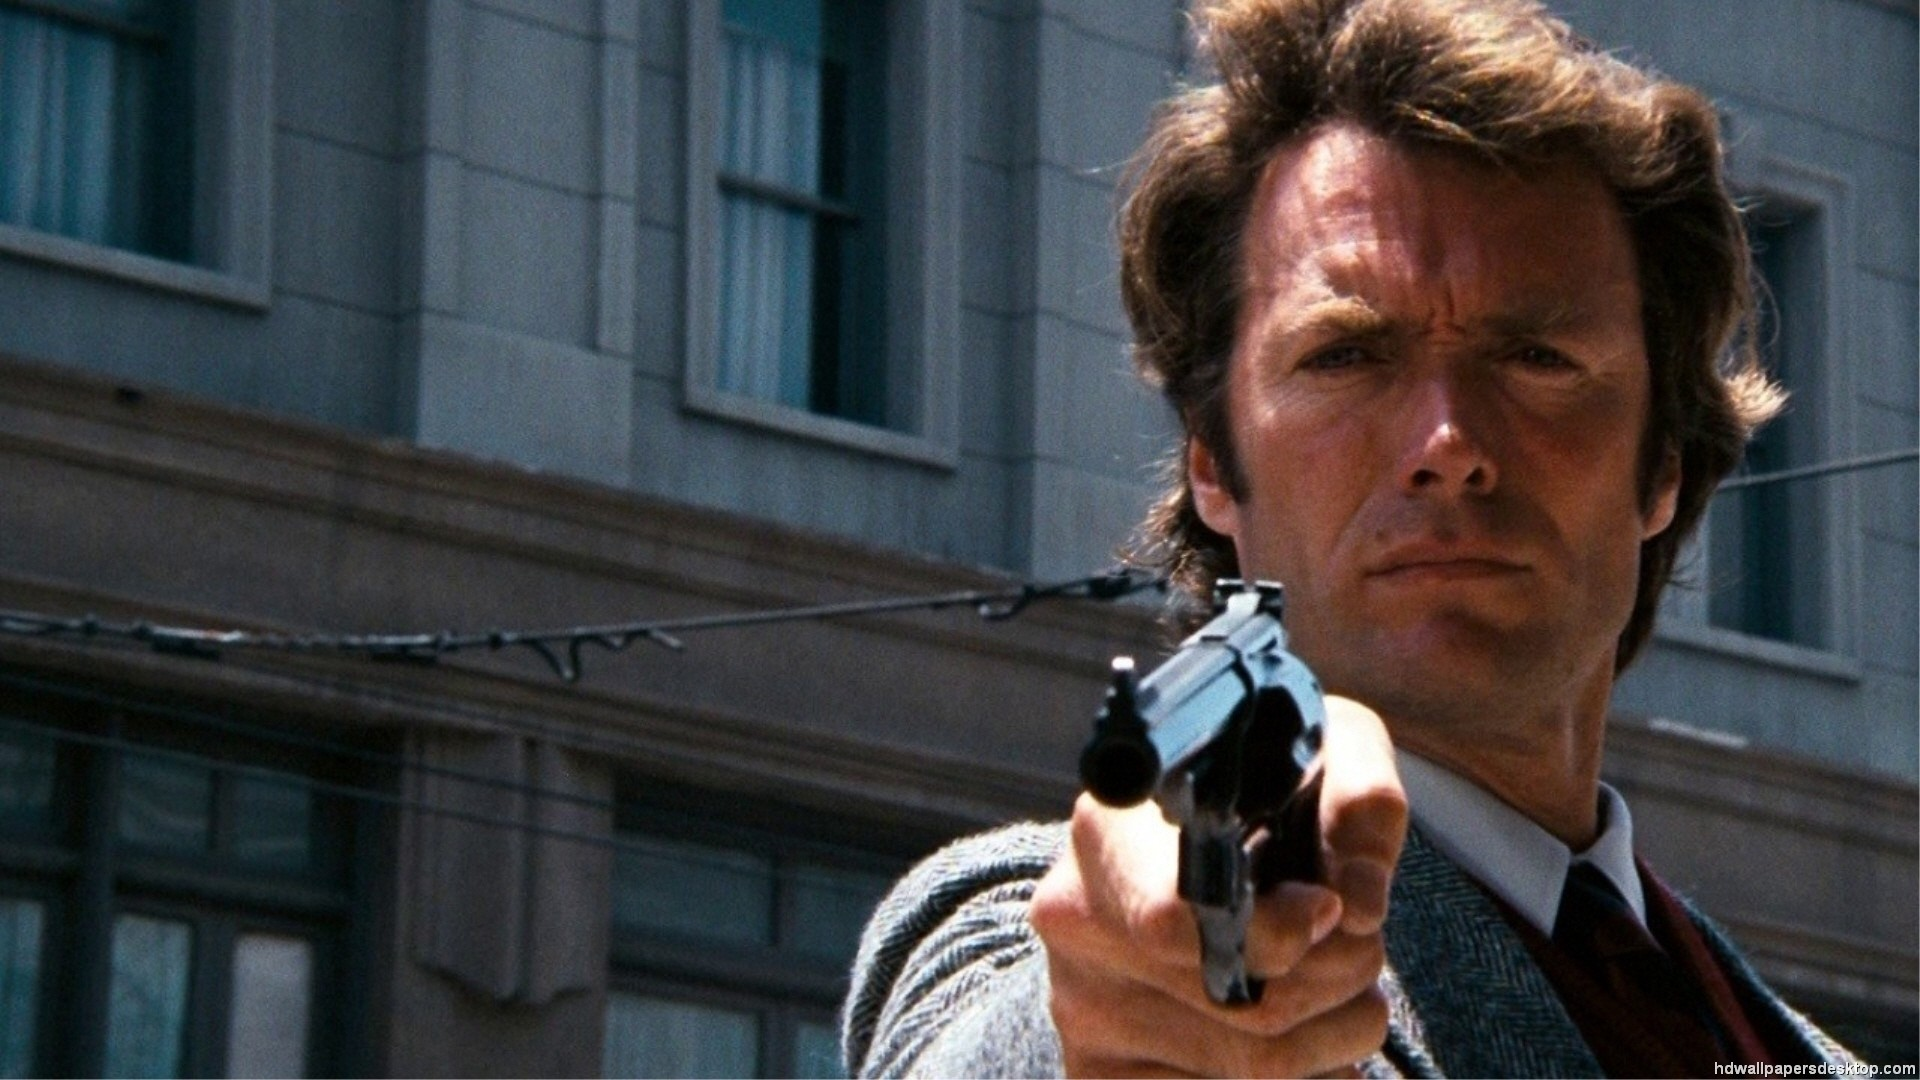 1920x1080 Dirty Harry, A Clint Eastwood wallpaper from 'Dirty Harry'.